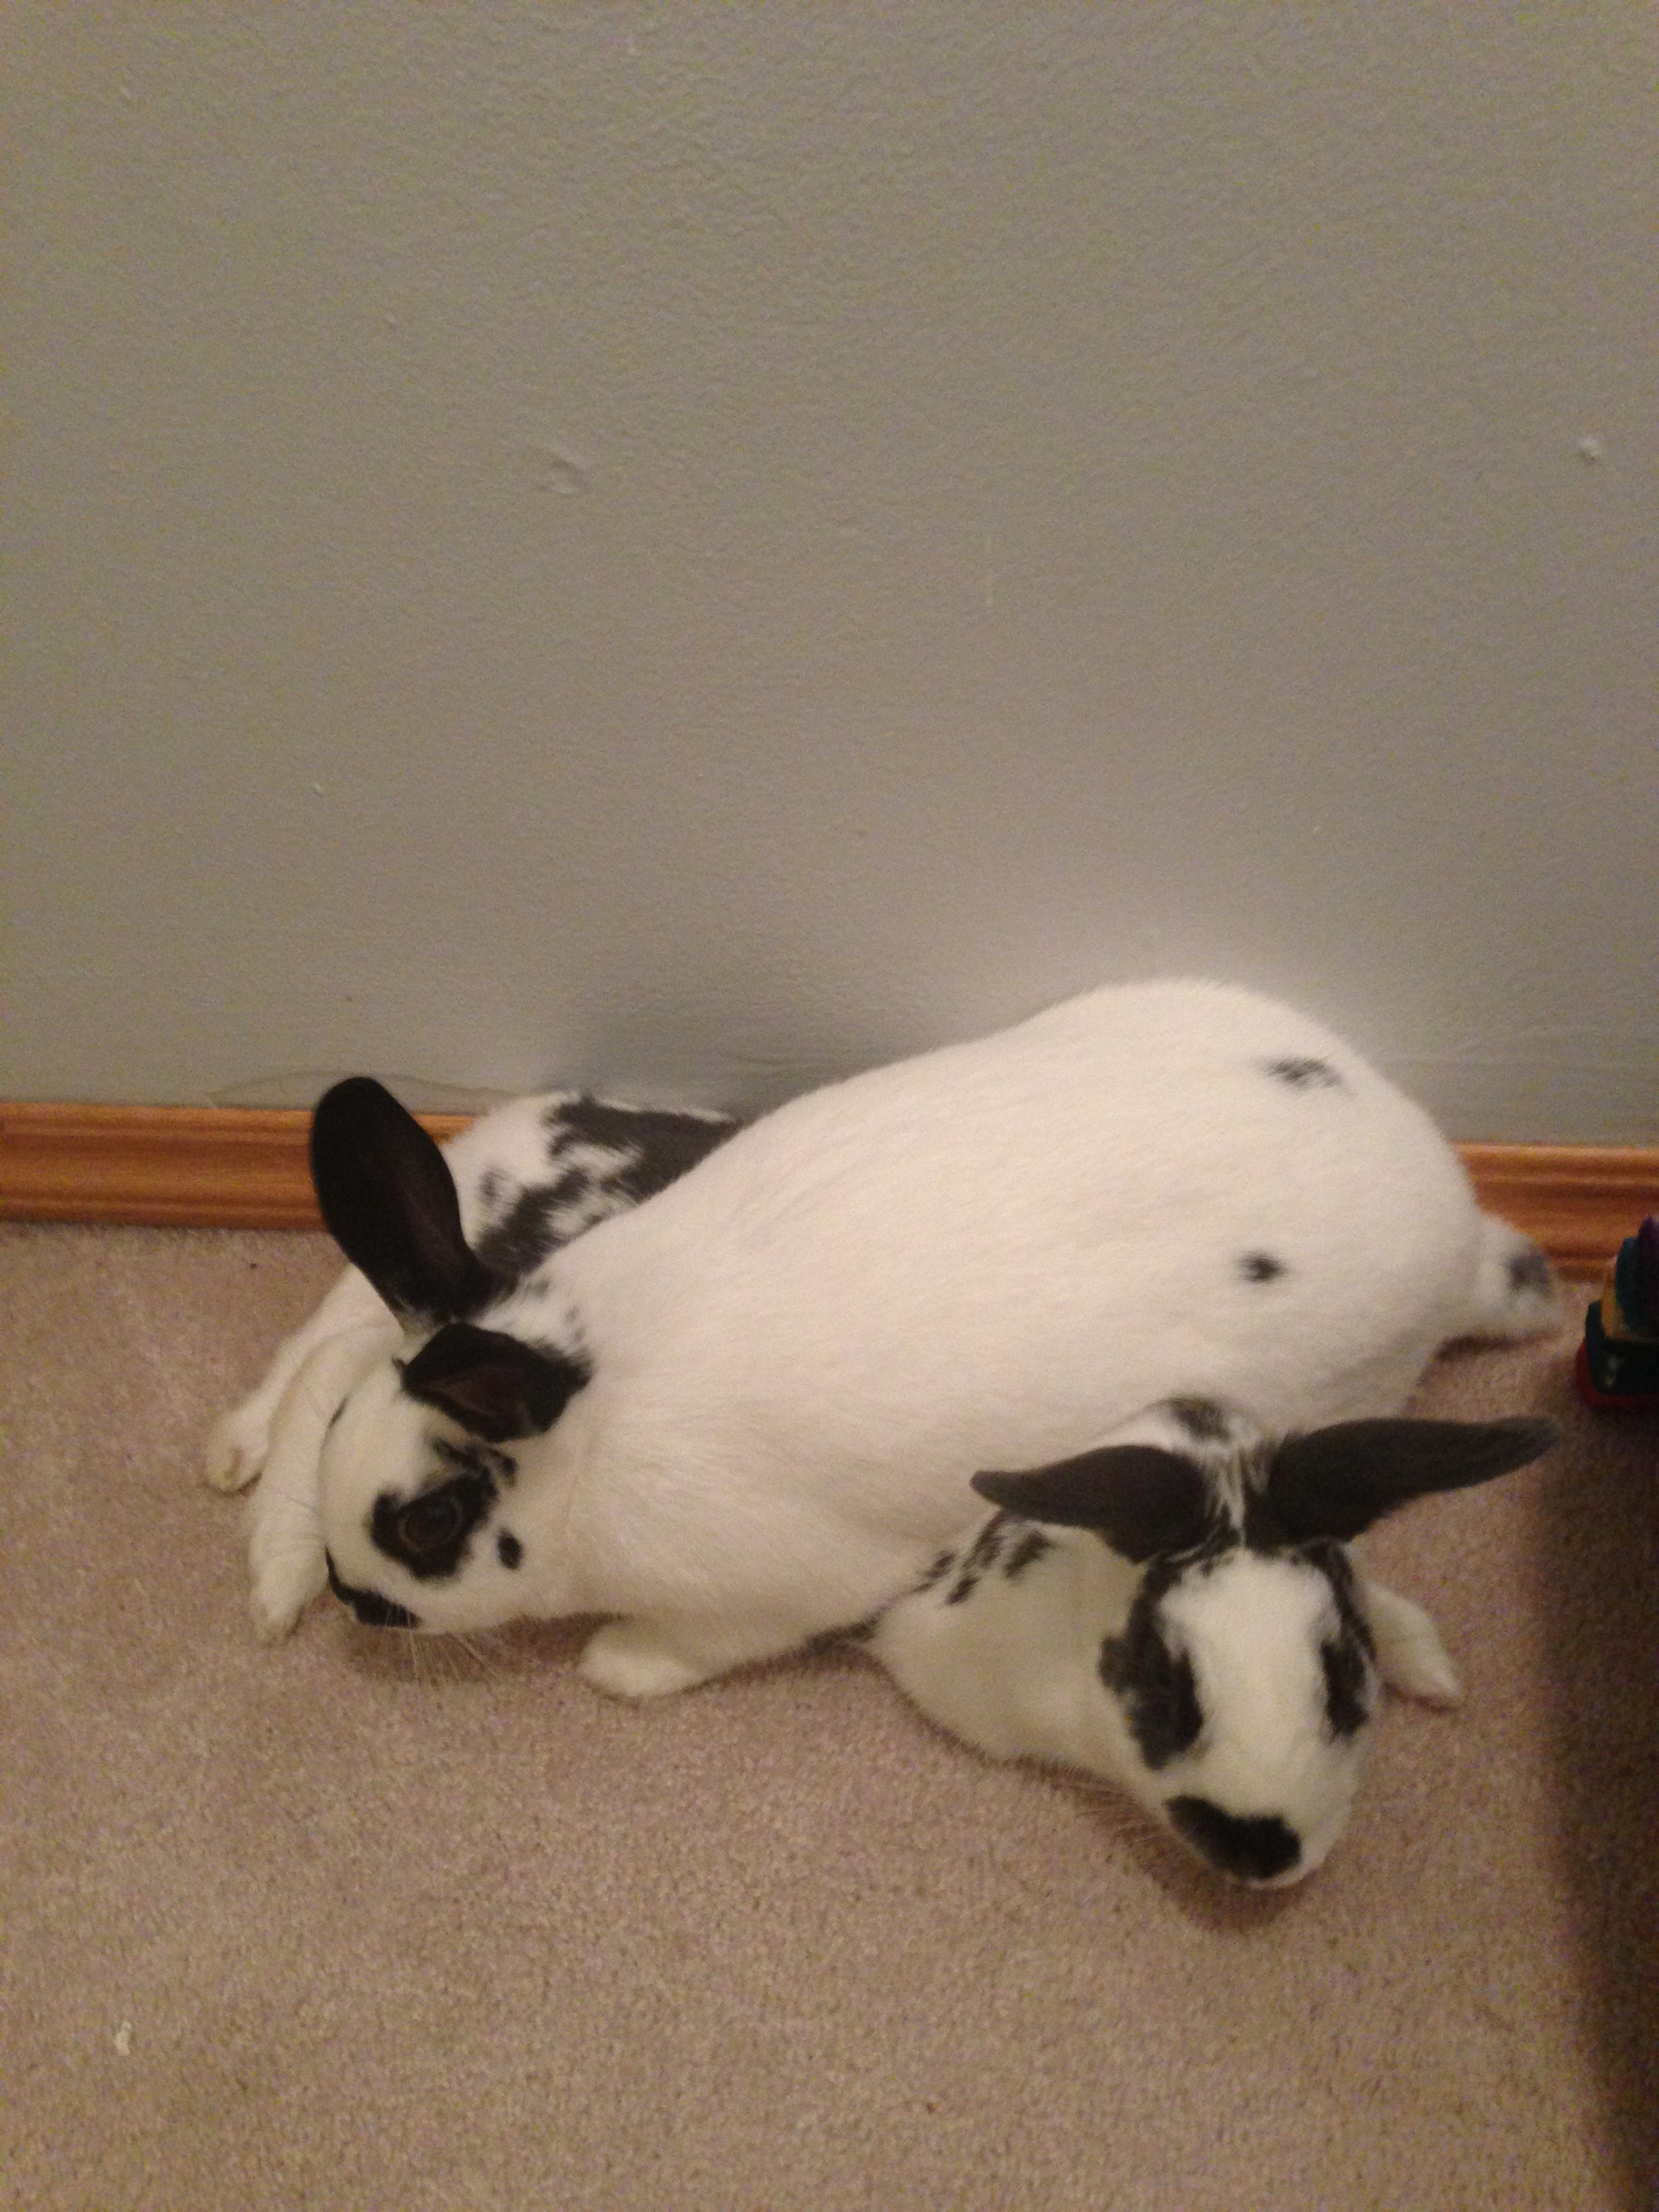 Bunny Protects His Sister from the Noisy Fireworks 2